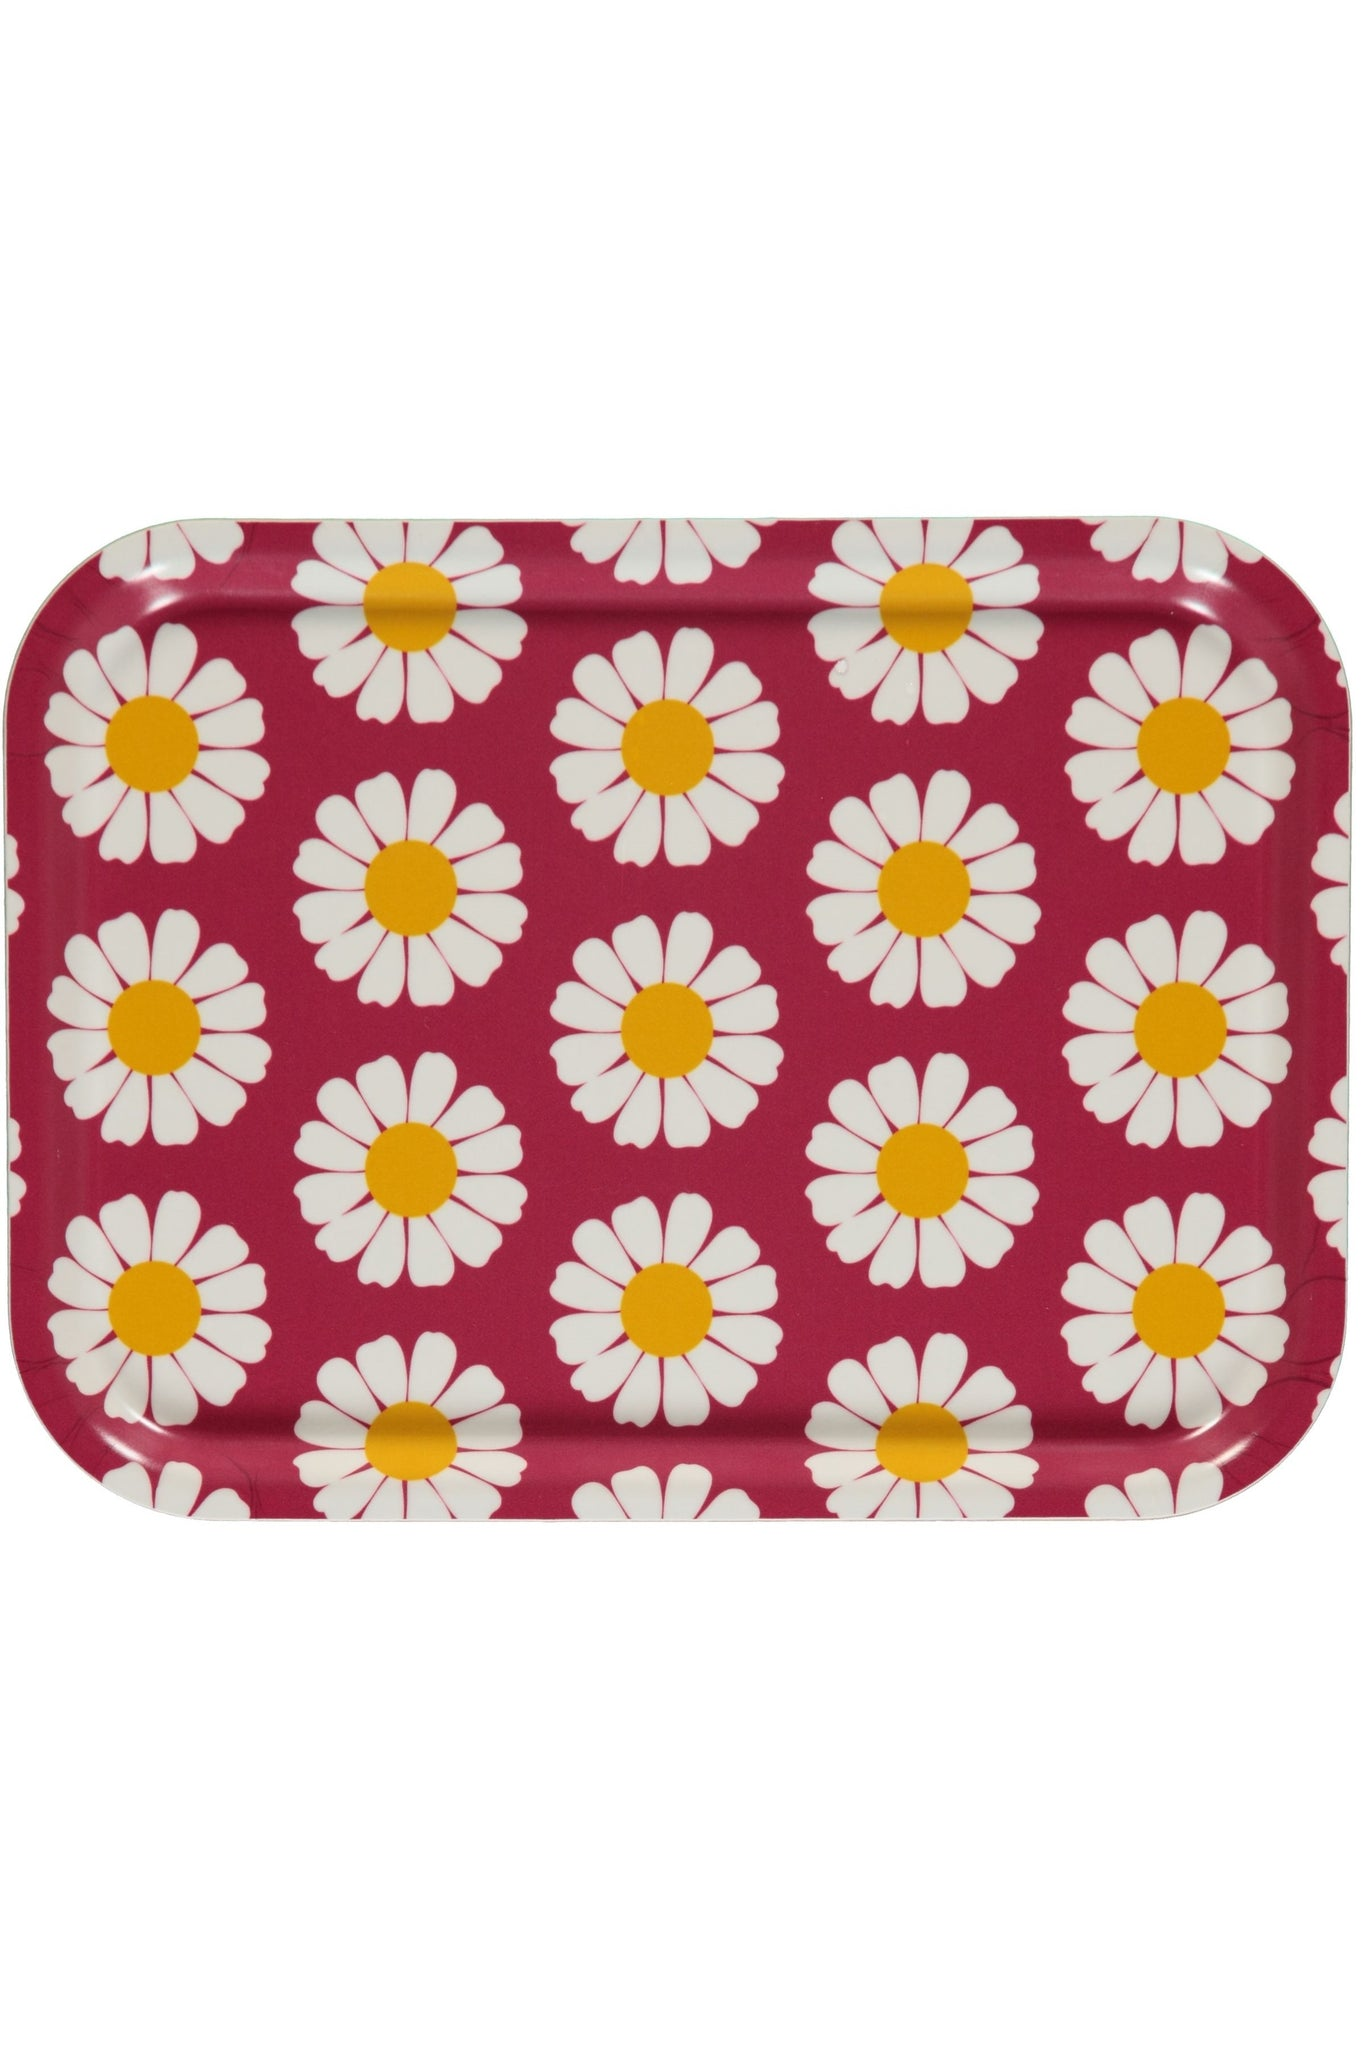 Tray - Daisy Print - One Size - Maxomorra Accessories - Snugglefox